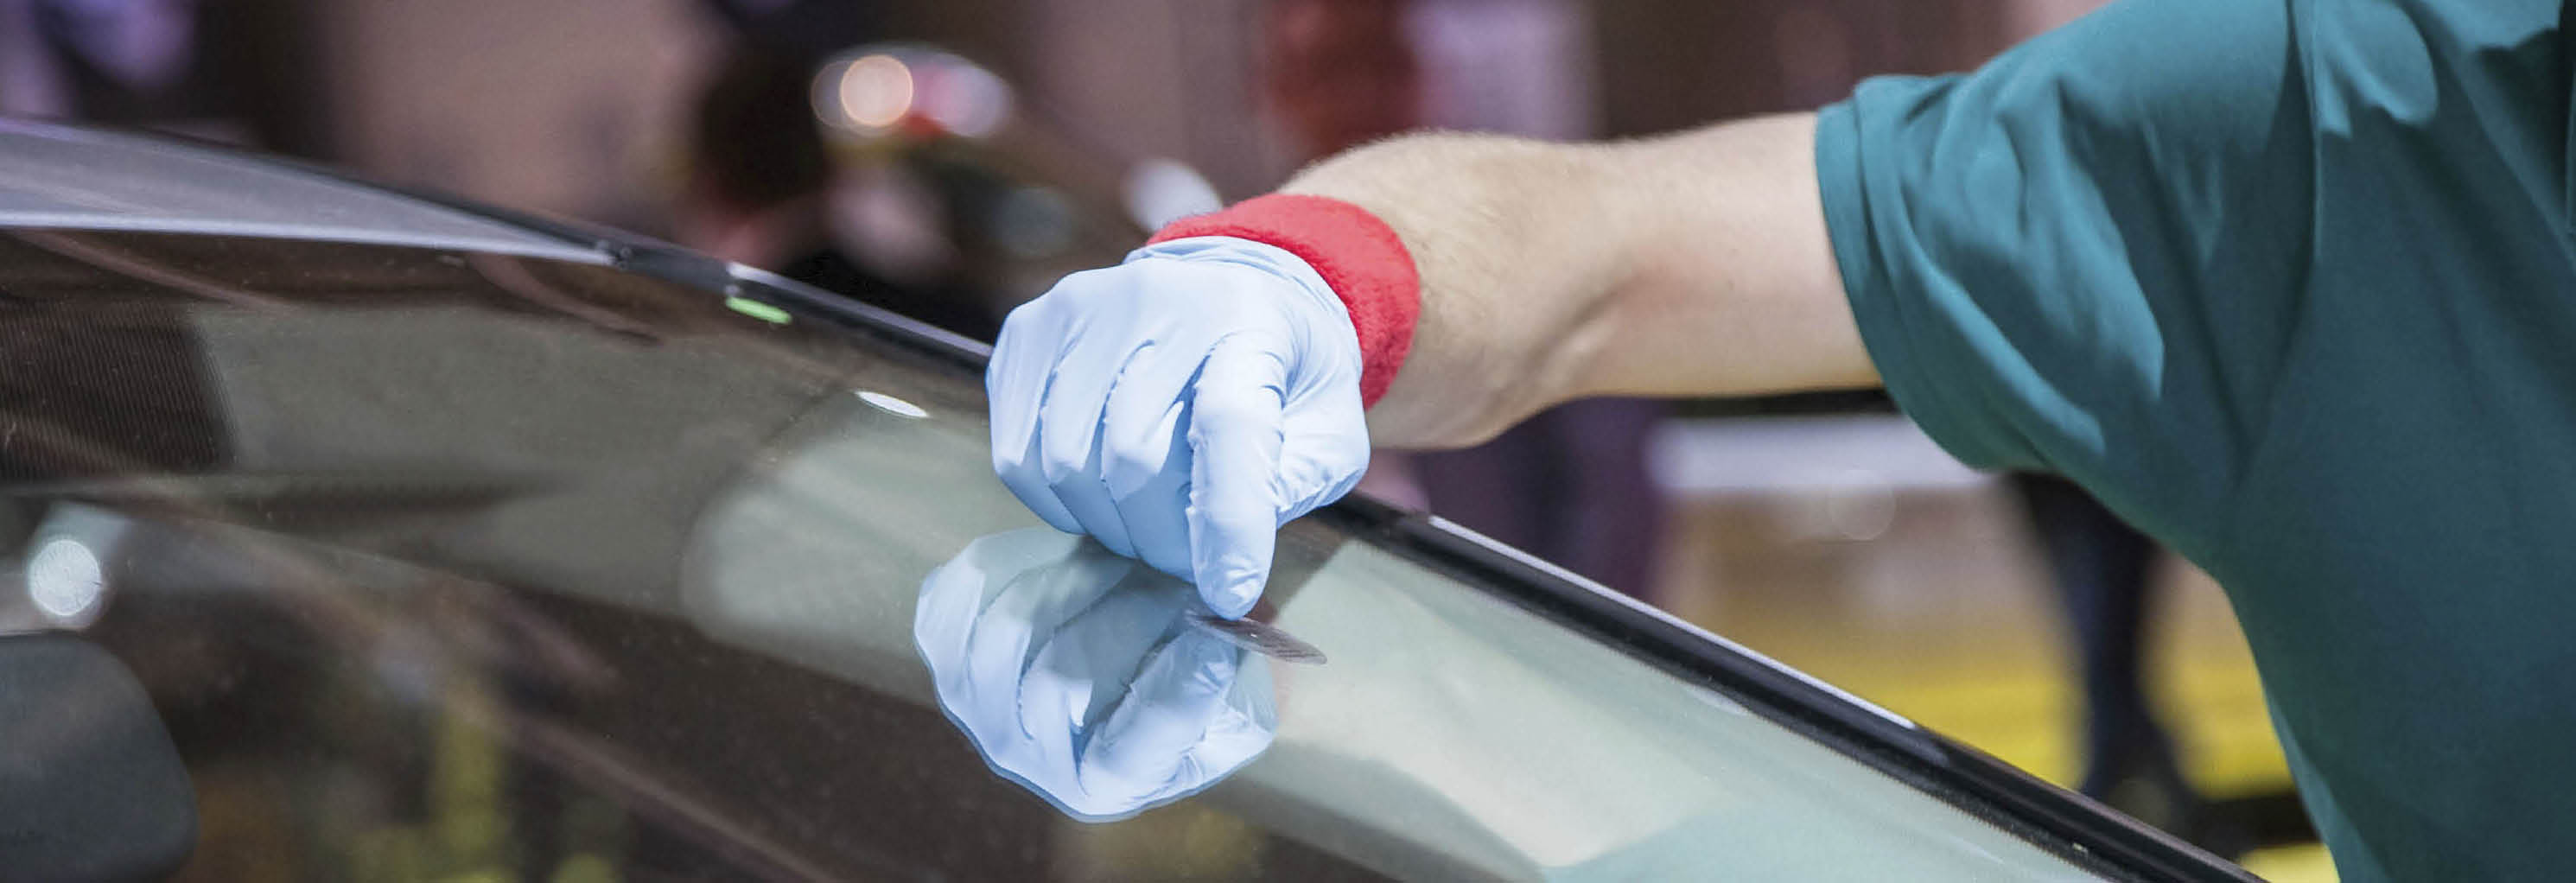 Service Auto Glass main banner image - windshield repair- windshield replacement - rock chip repair